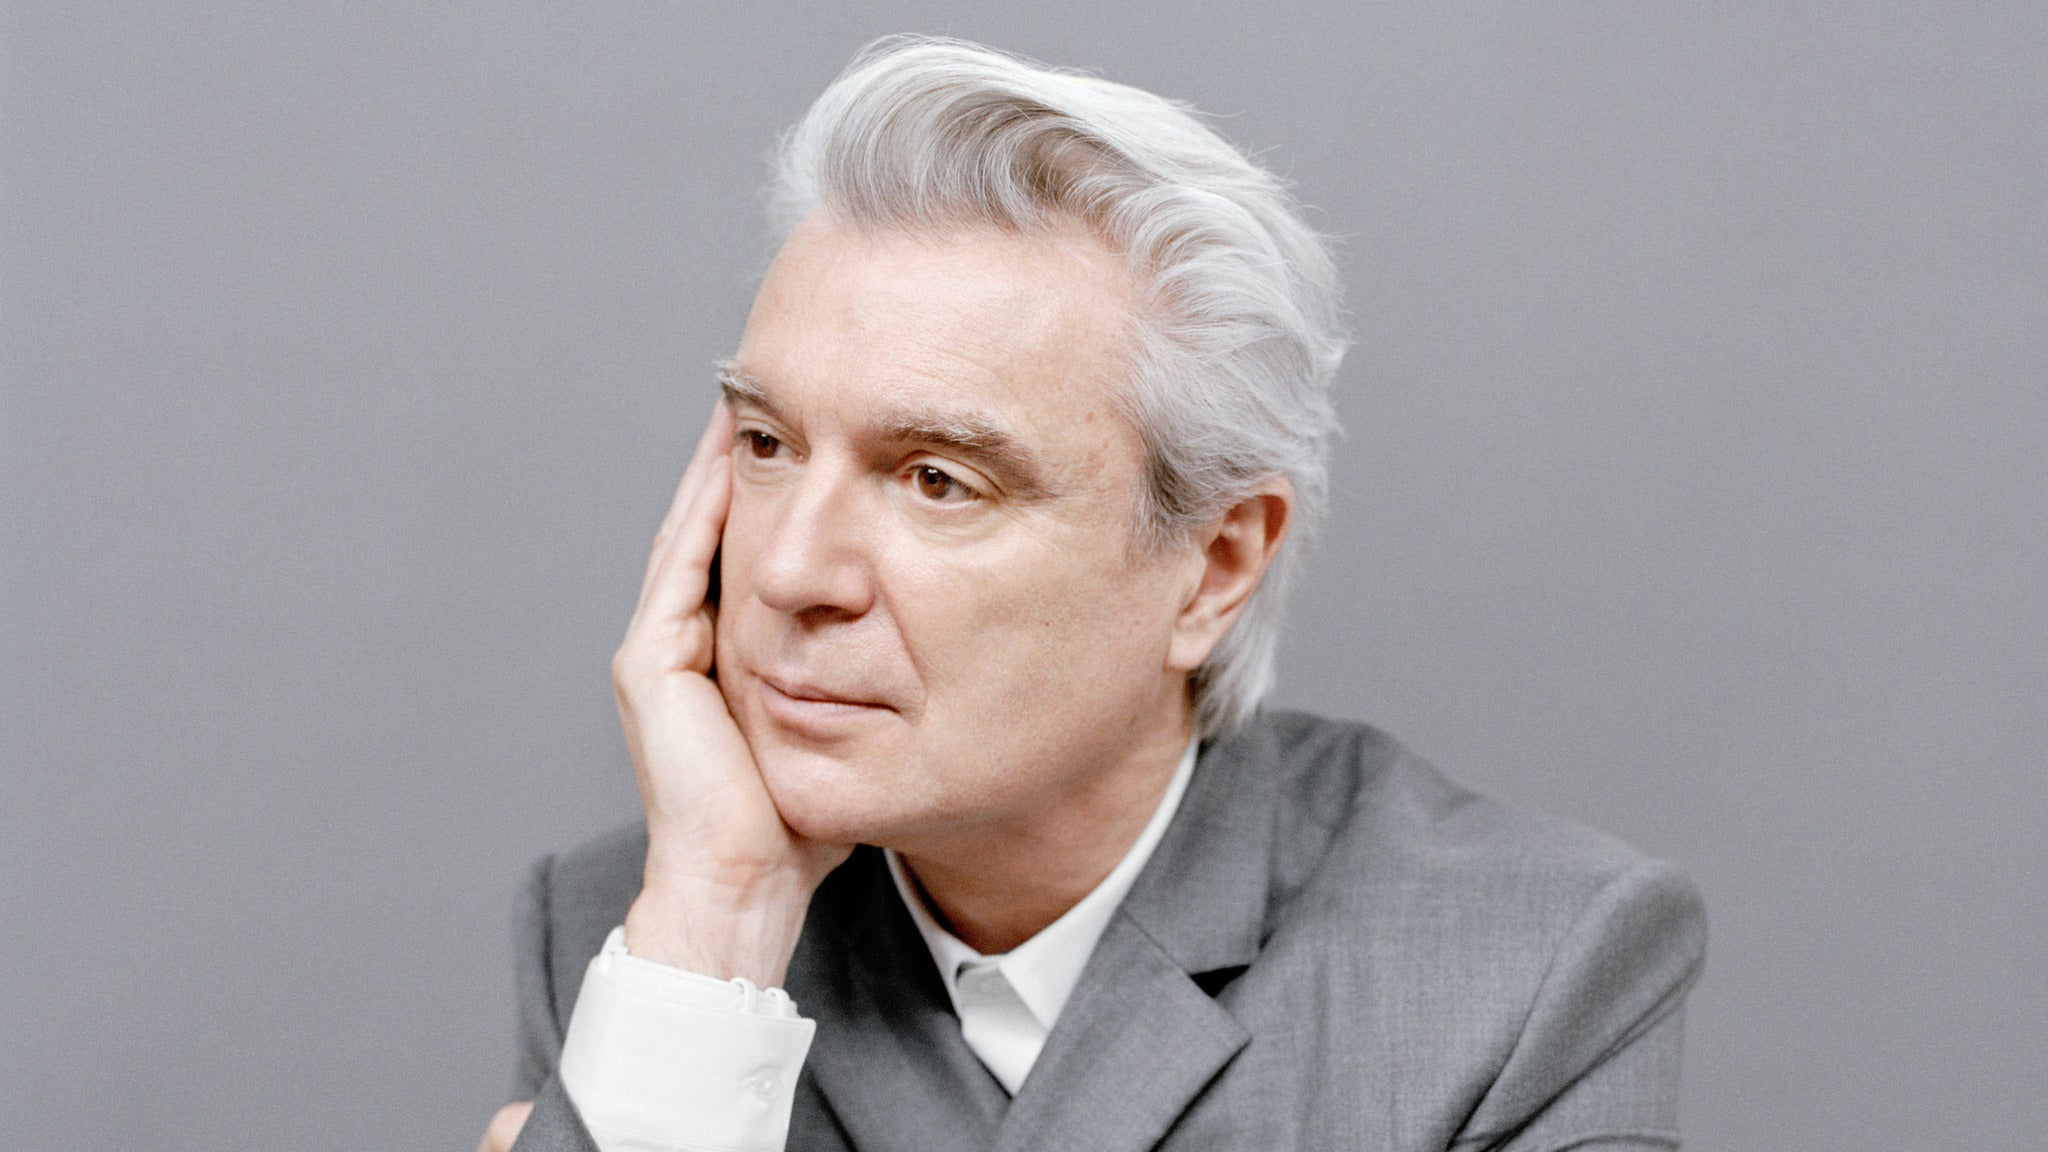 WXPN Presents David Byrne at BB&T Pavilion